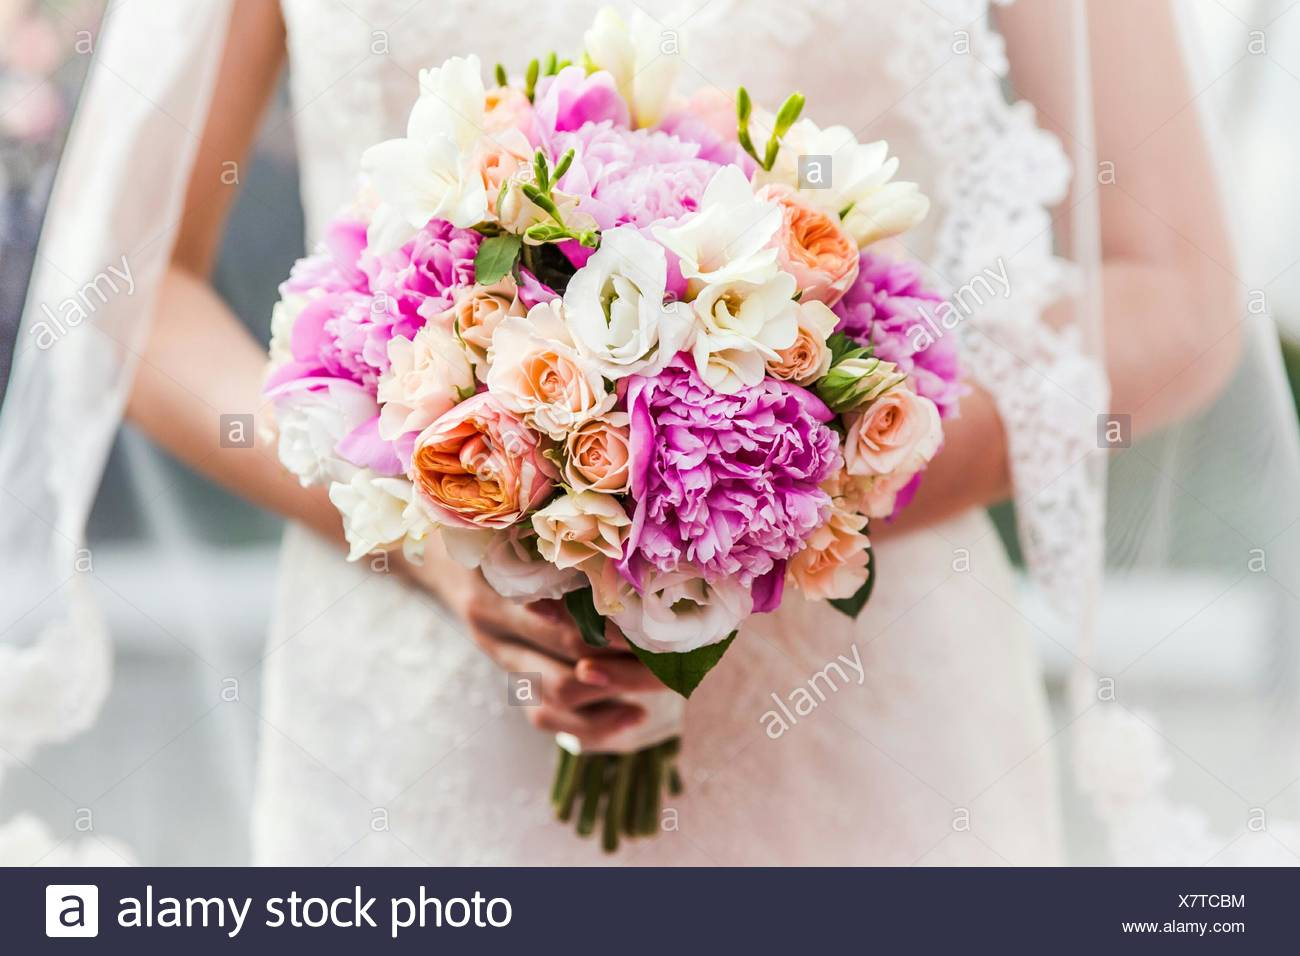 Midsection Of Bride Holding Bouquet - Stock Image